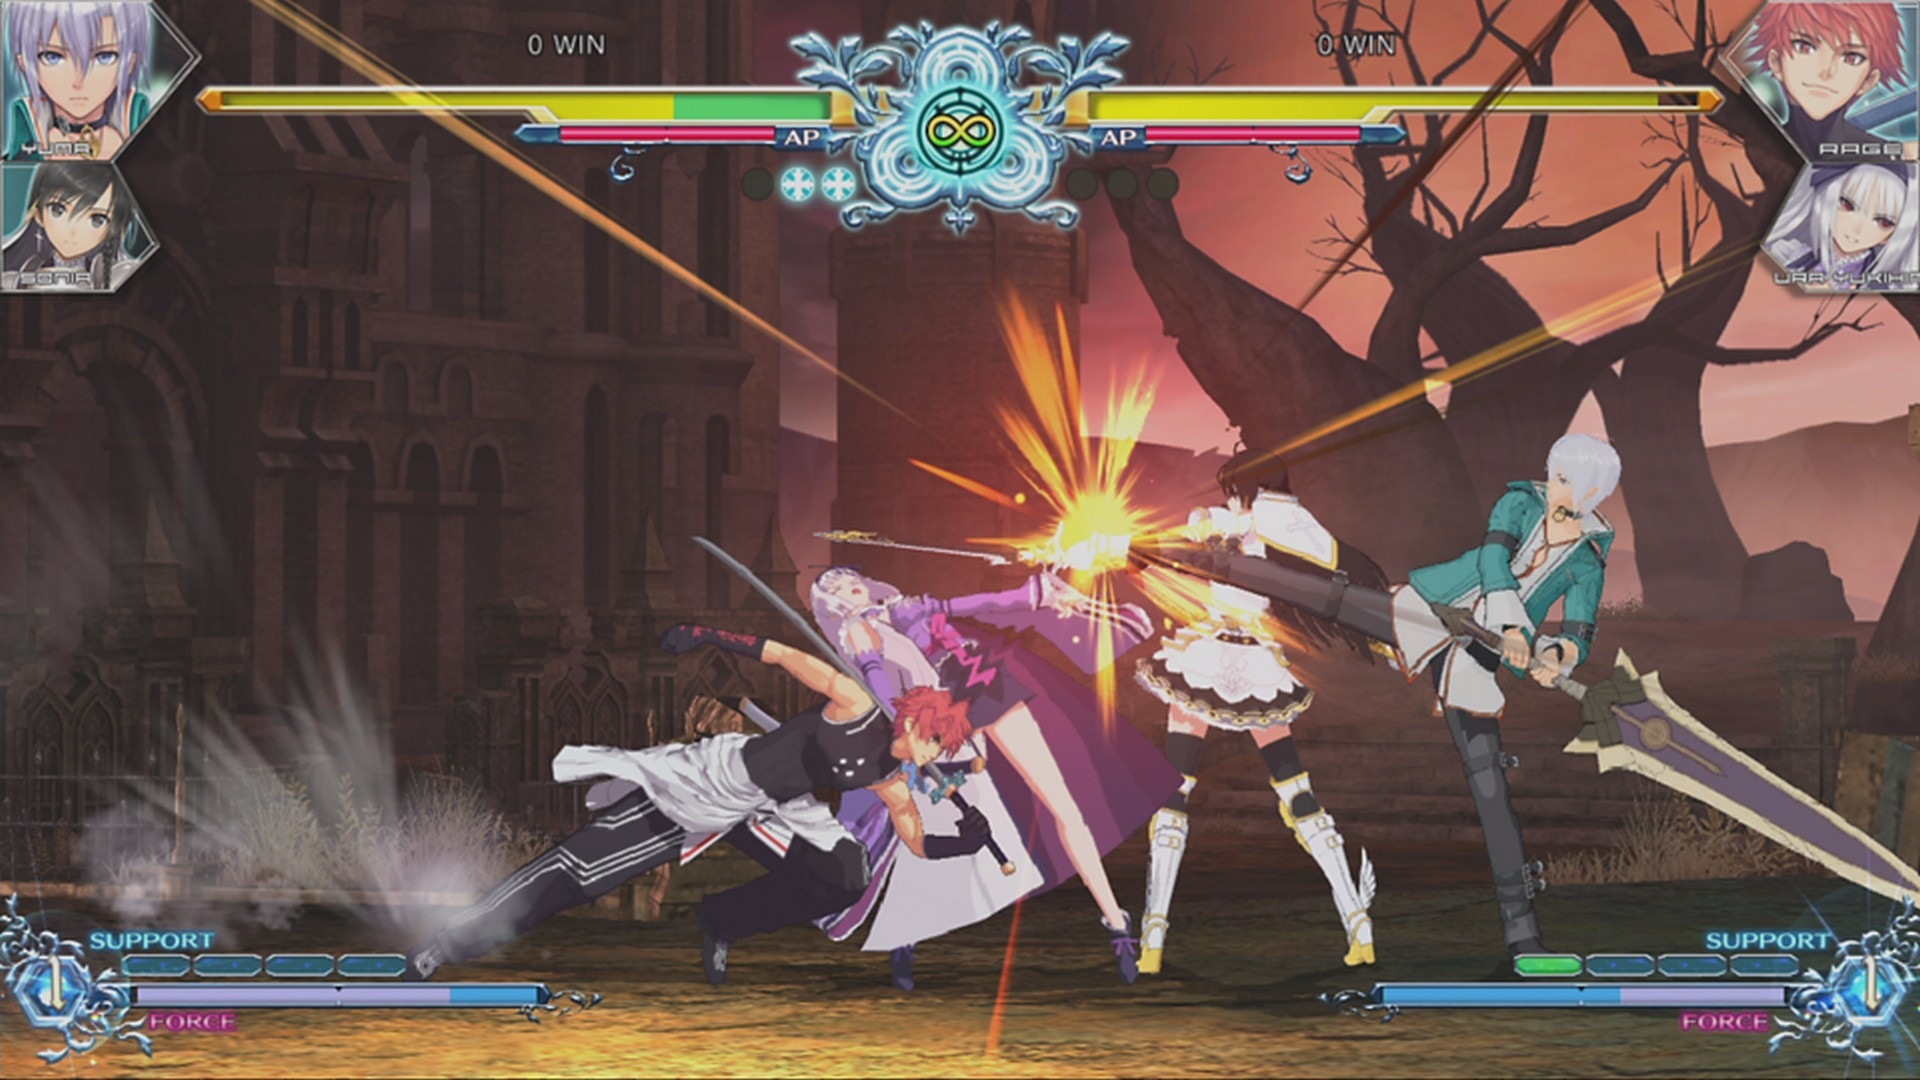 Blade Arcus Rebellion from Shining for PS4 & NS - Hail and